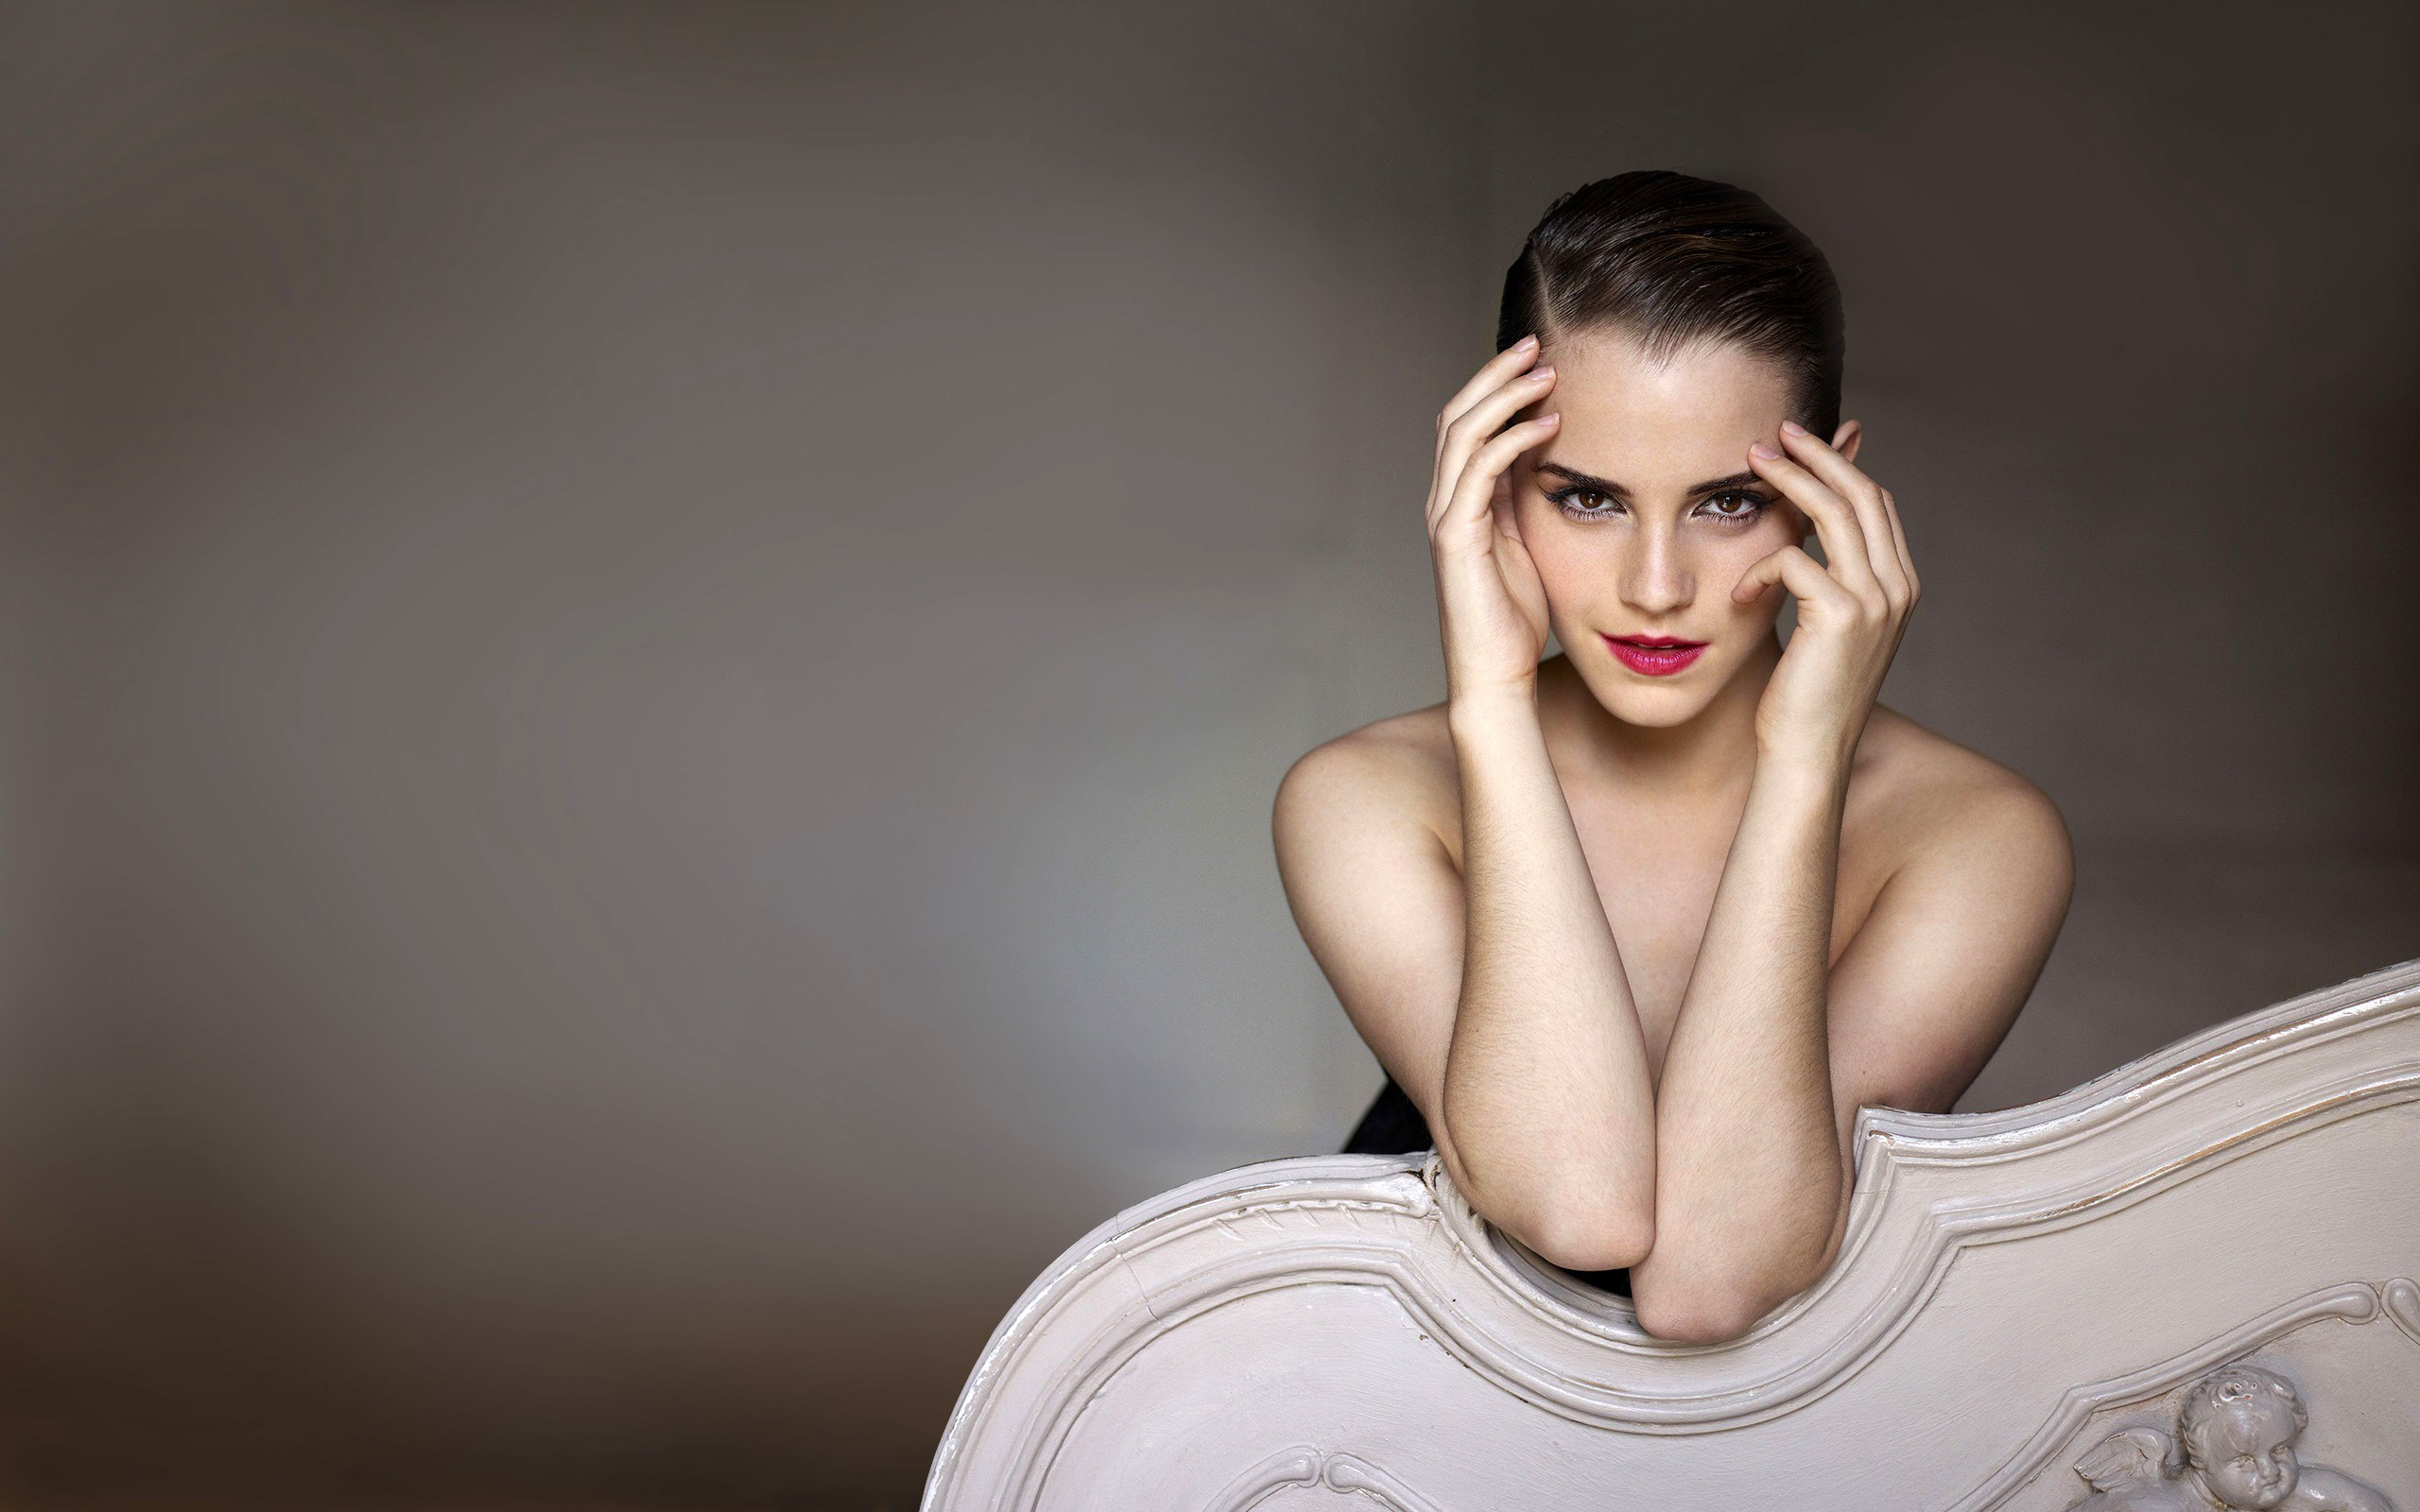 1920x1080 emma watson 2015 laptop full hd 1080p hd 4k - Emma watson wallpaper free download ...